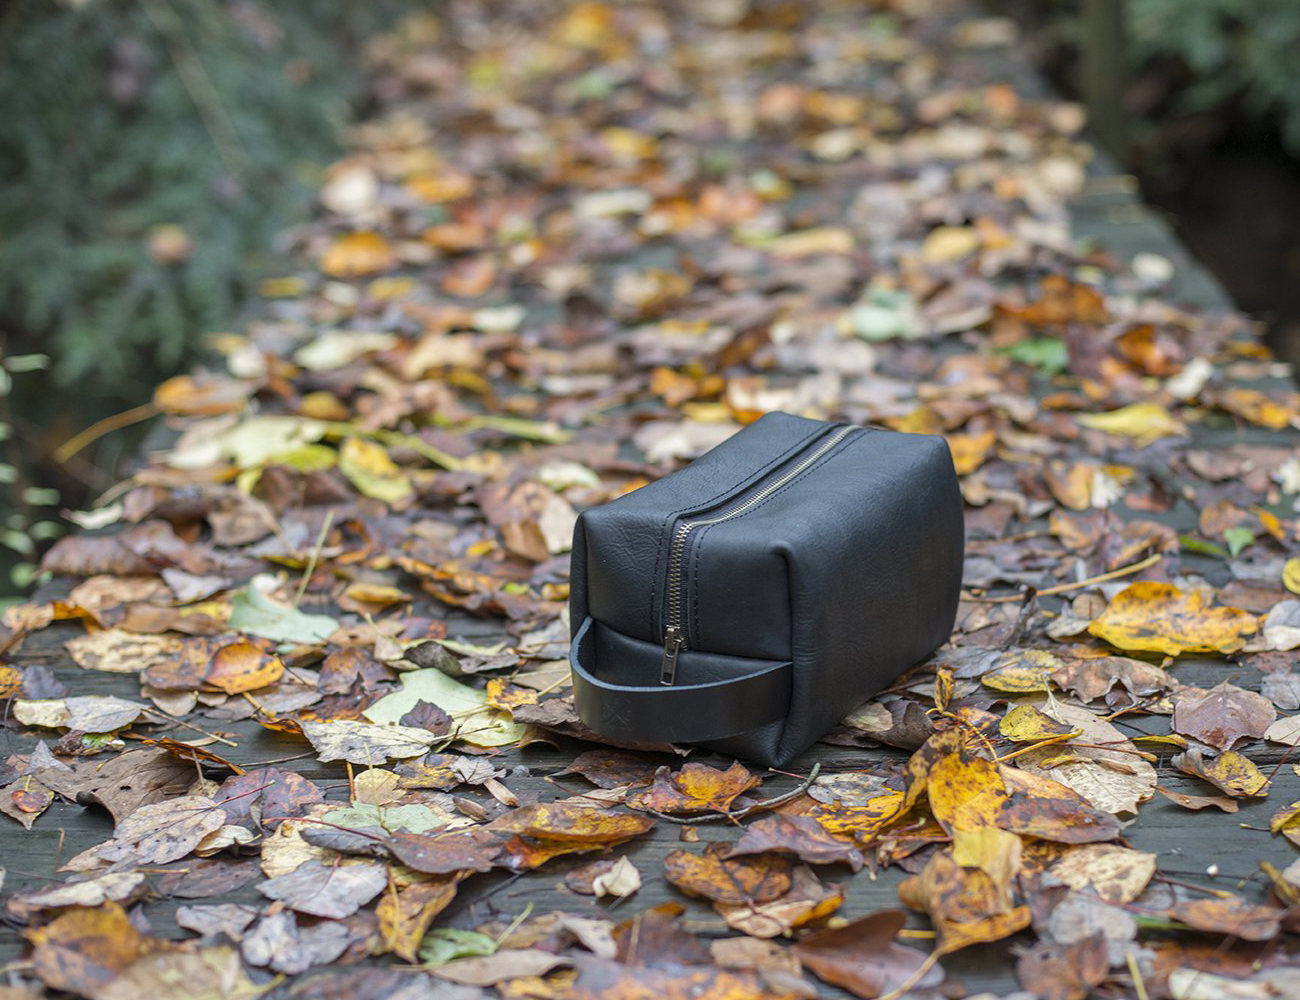 The Leather Dopp Kit by Go Forth Goods